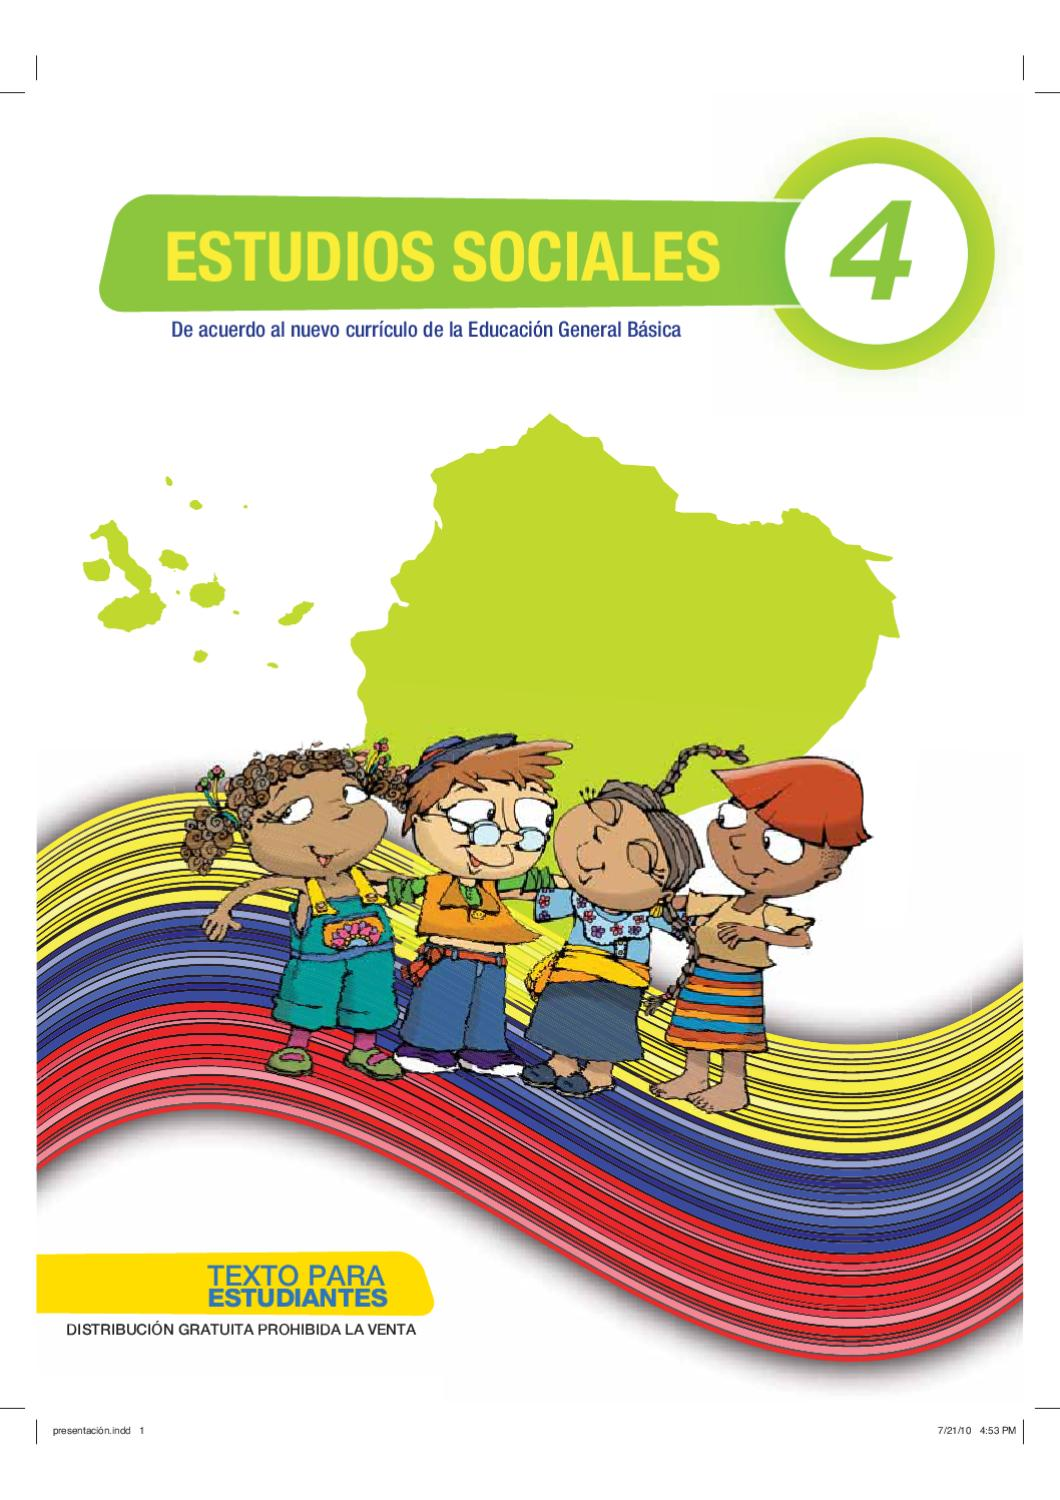 Sociales 4 by quito ecuador - issuu cfd9291d7364